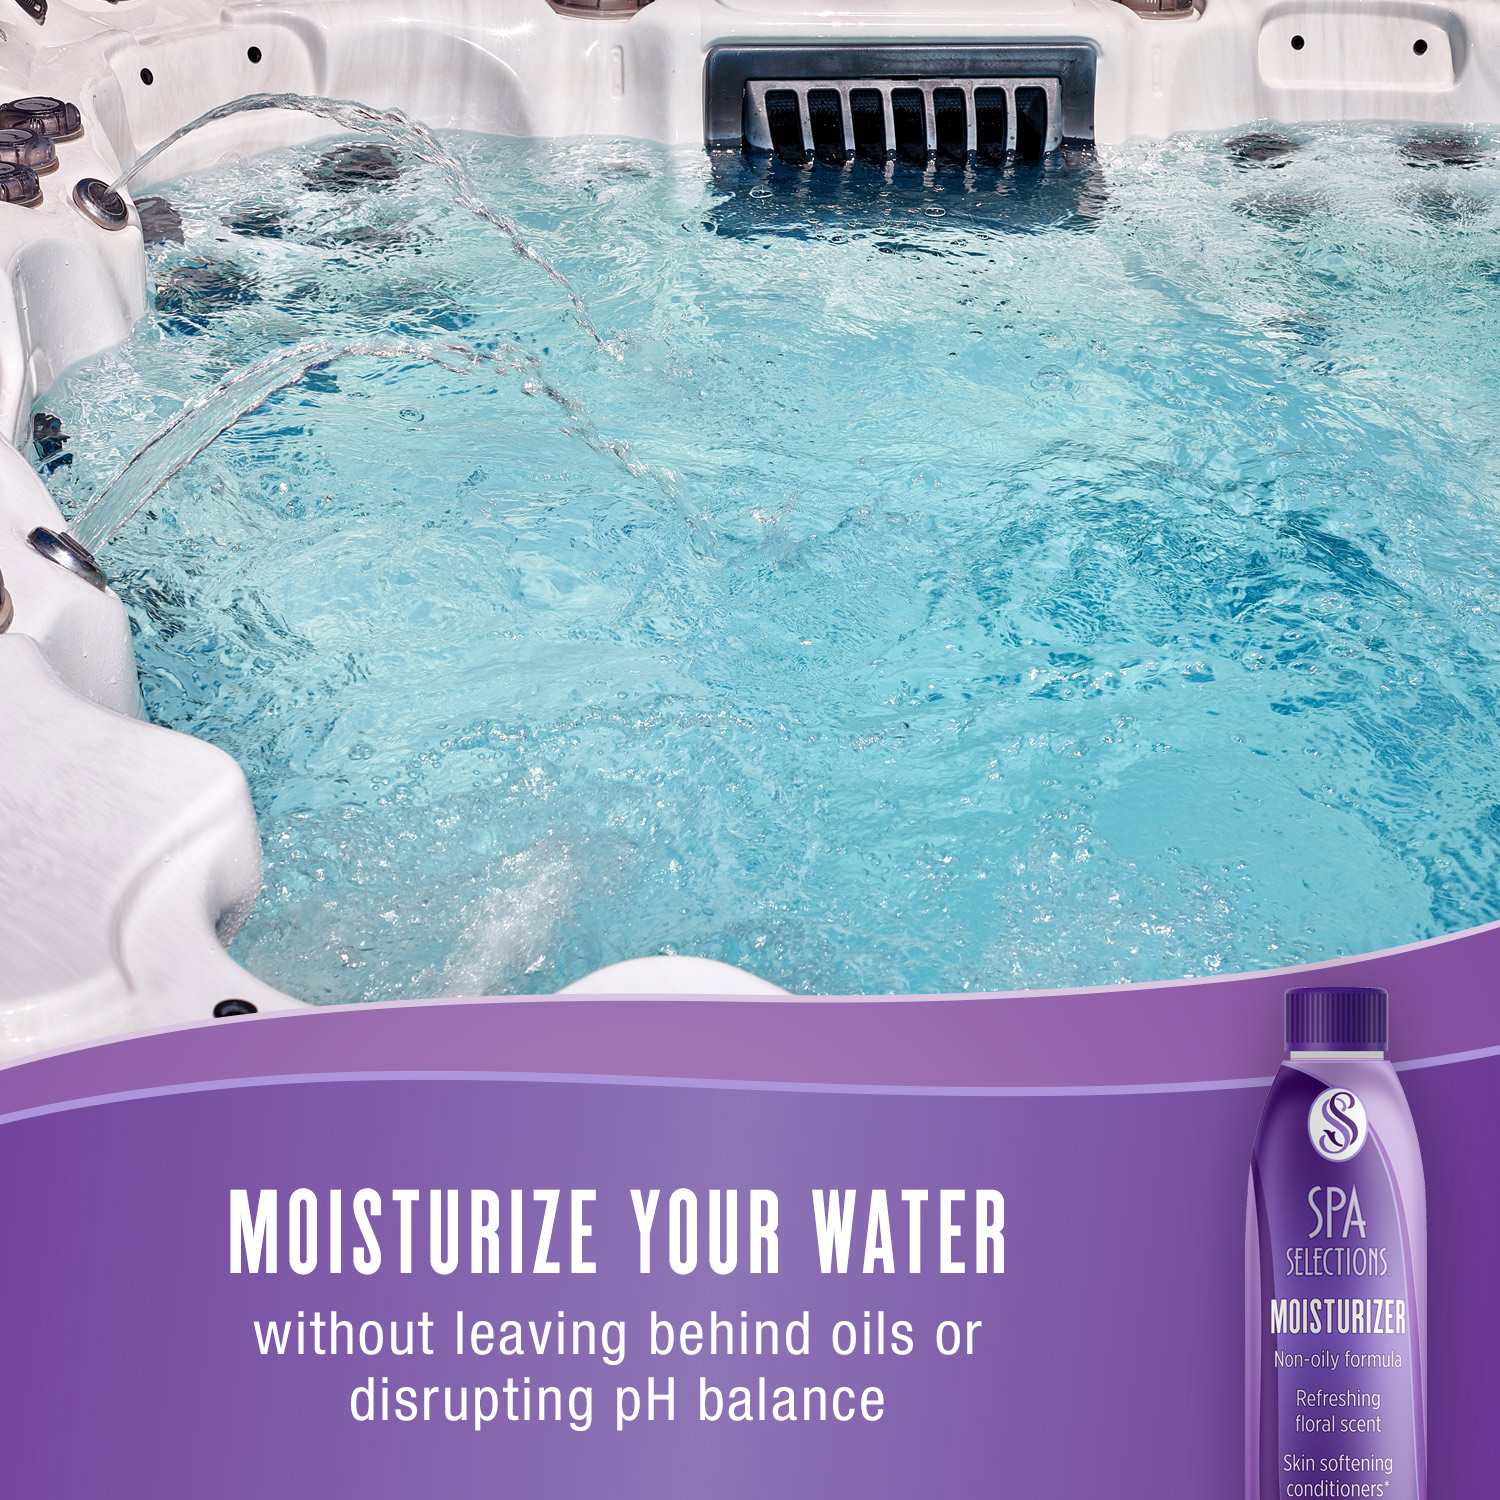 Moisturize your water without leaving behind oils or disrupting pH balance with Spa Selections Moisturizer. Photo of crystal clear water in an outdoor hot tub.